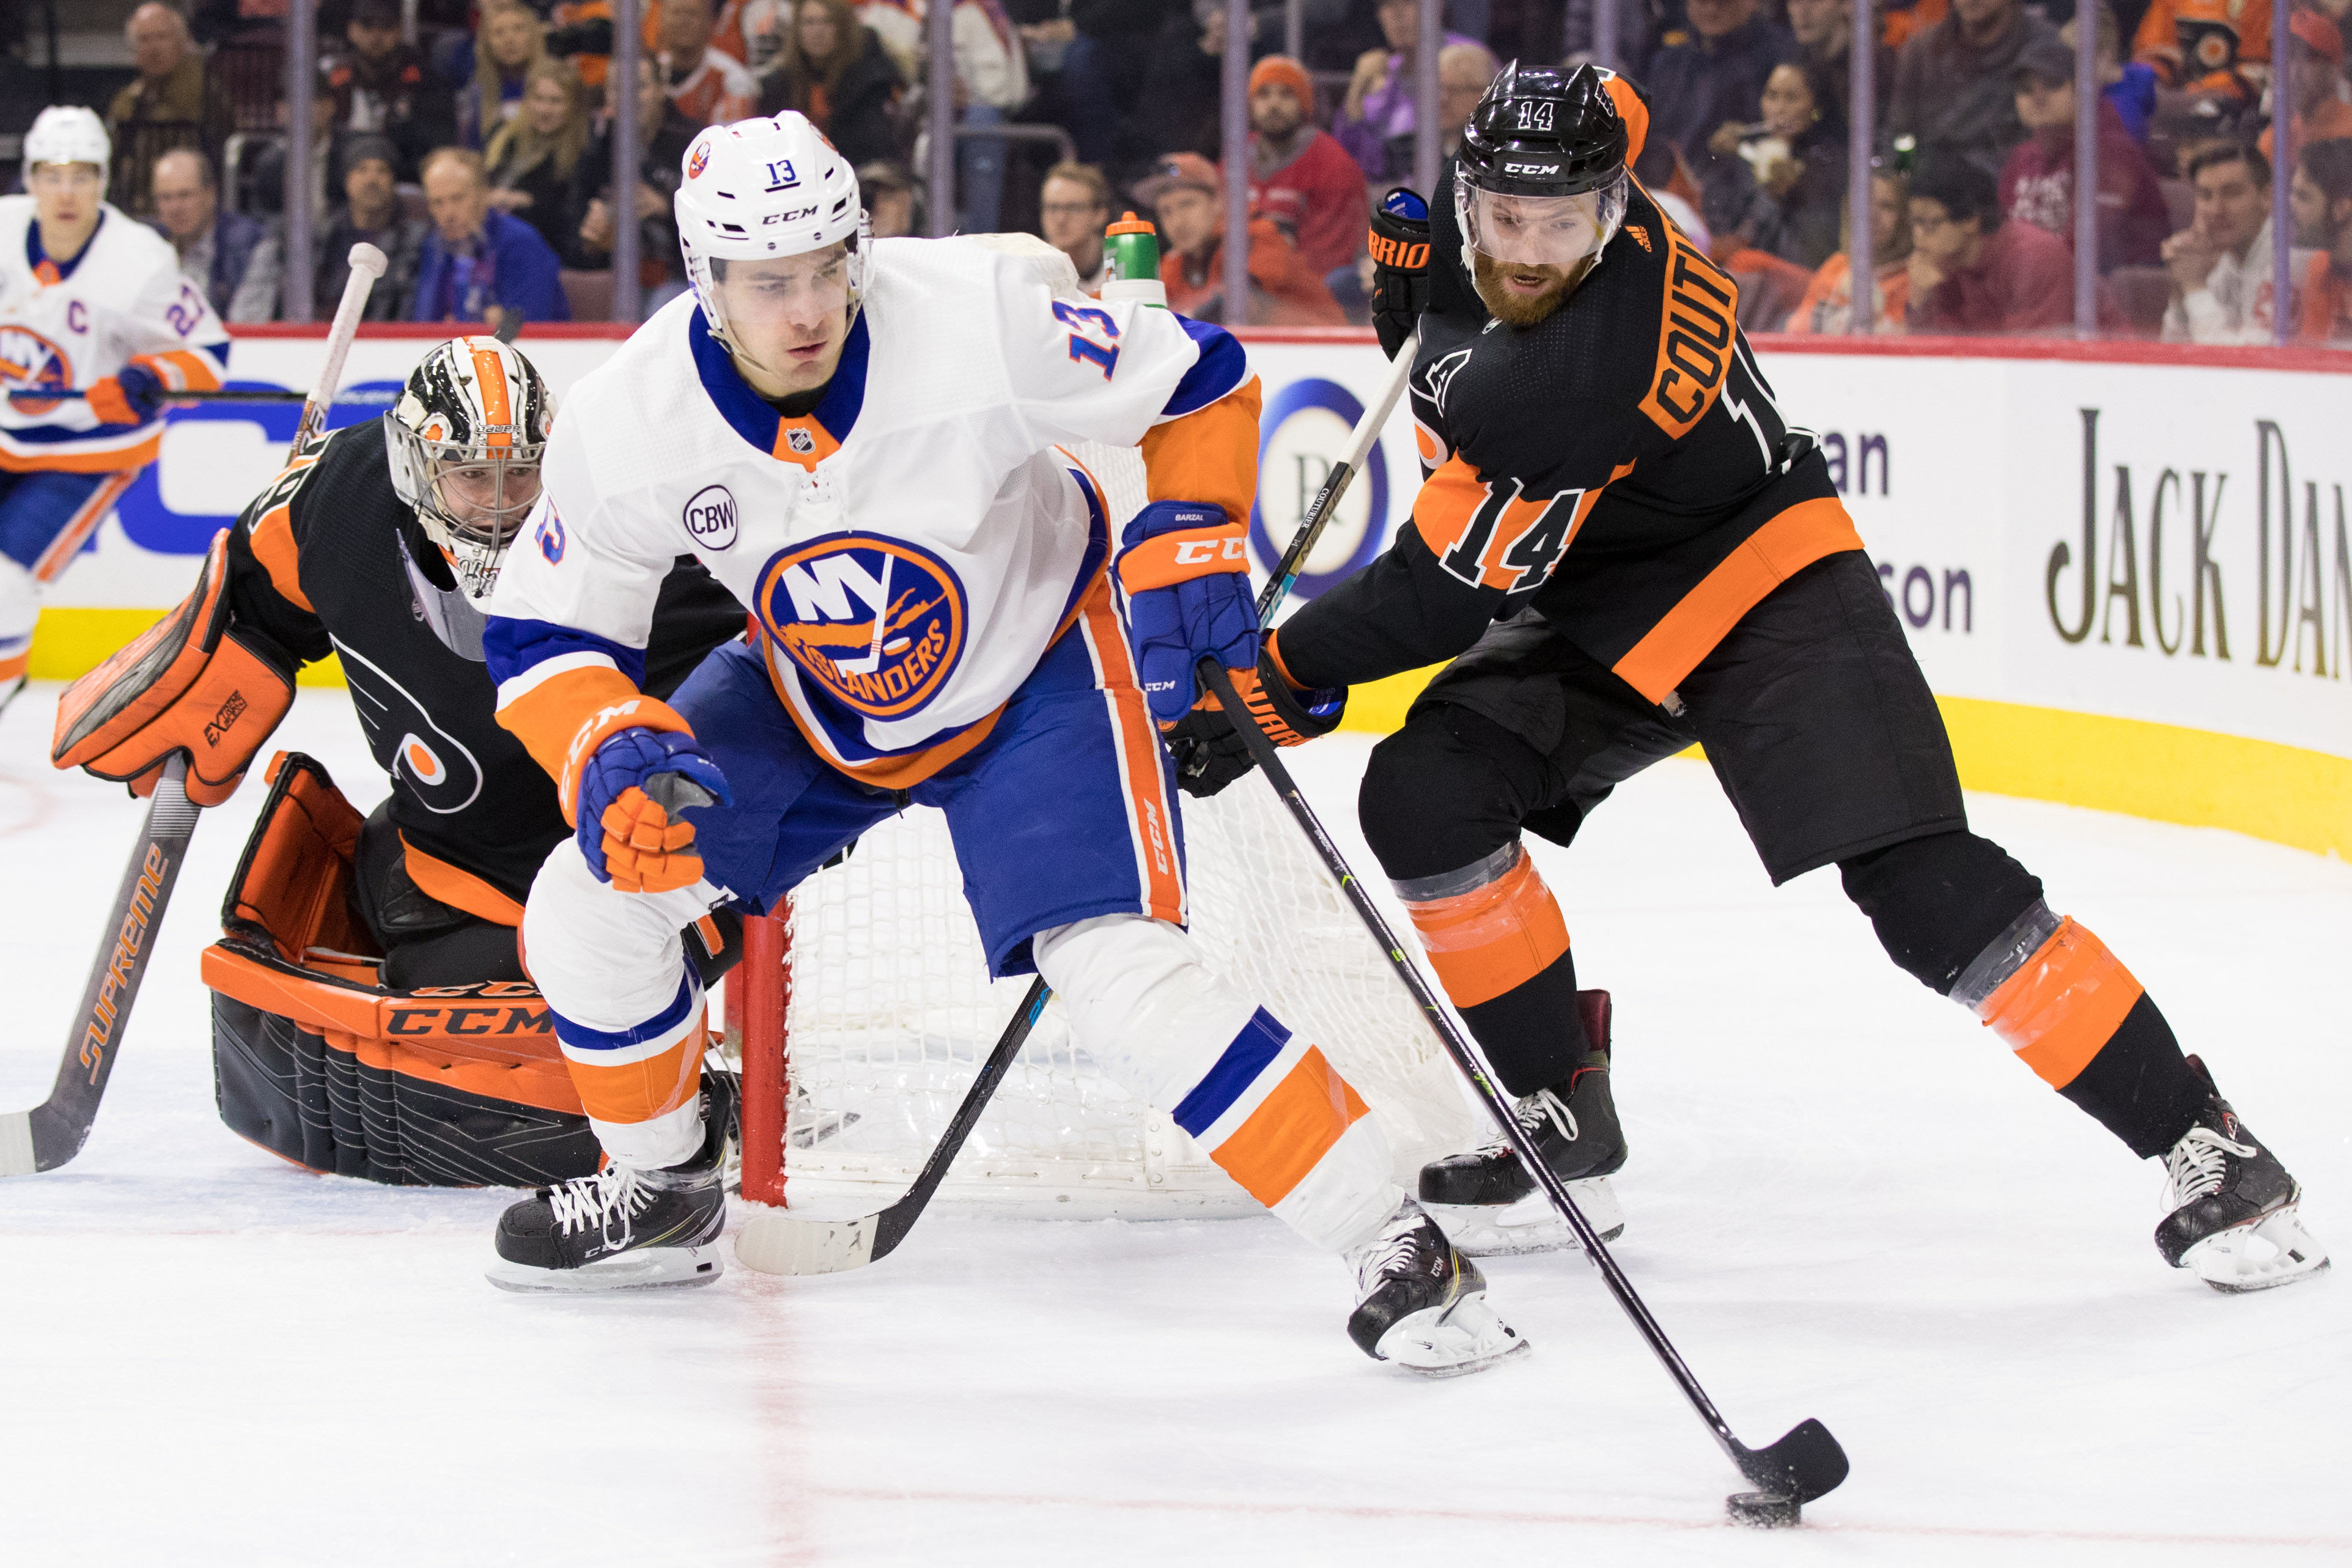 Mar 23, 2019; Philadelphia, PA, USA; New York Islanders center Mathew Barzal (13) skates with the puck in front of Philadelphia Flyers center Sean Couturier (14) and goaltender Carter Hart (79) during the second period at Wells Fargo Center. Mandatory Credit: Bill Streicher-USA TODAY Sports